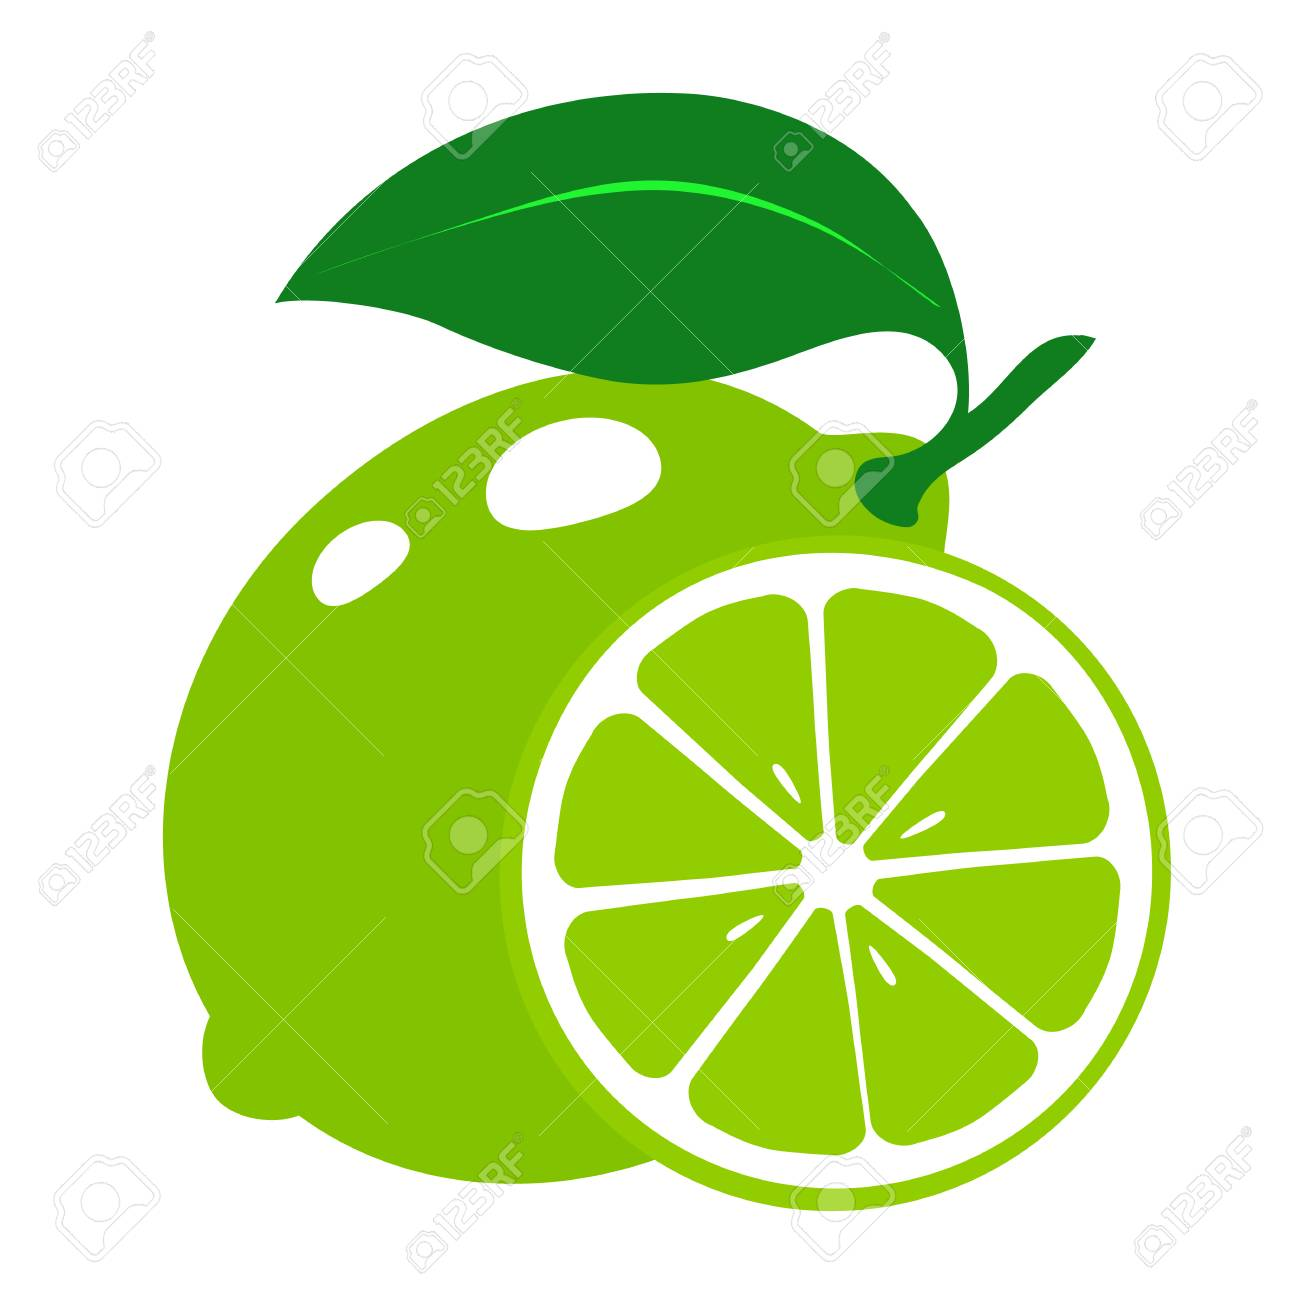 Fresh slices of lime isolated on white background. Vector illustration. - 104648748